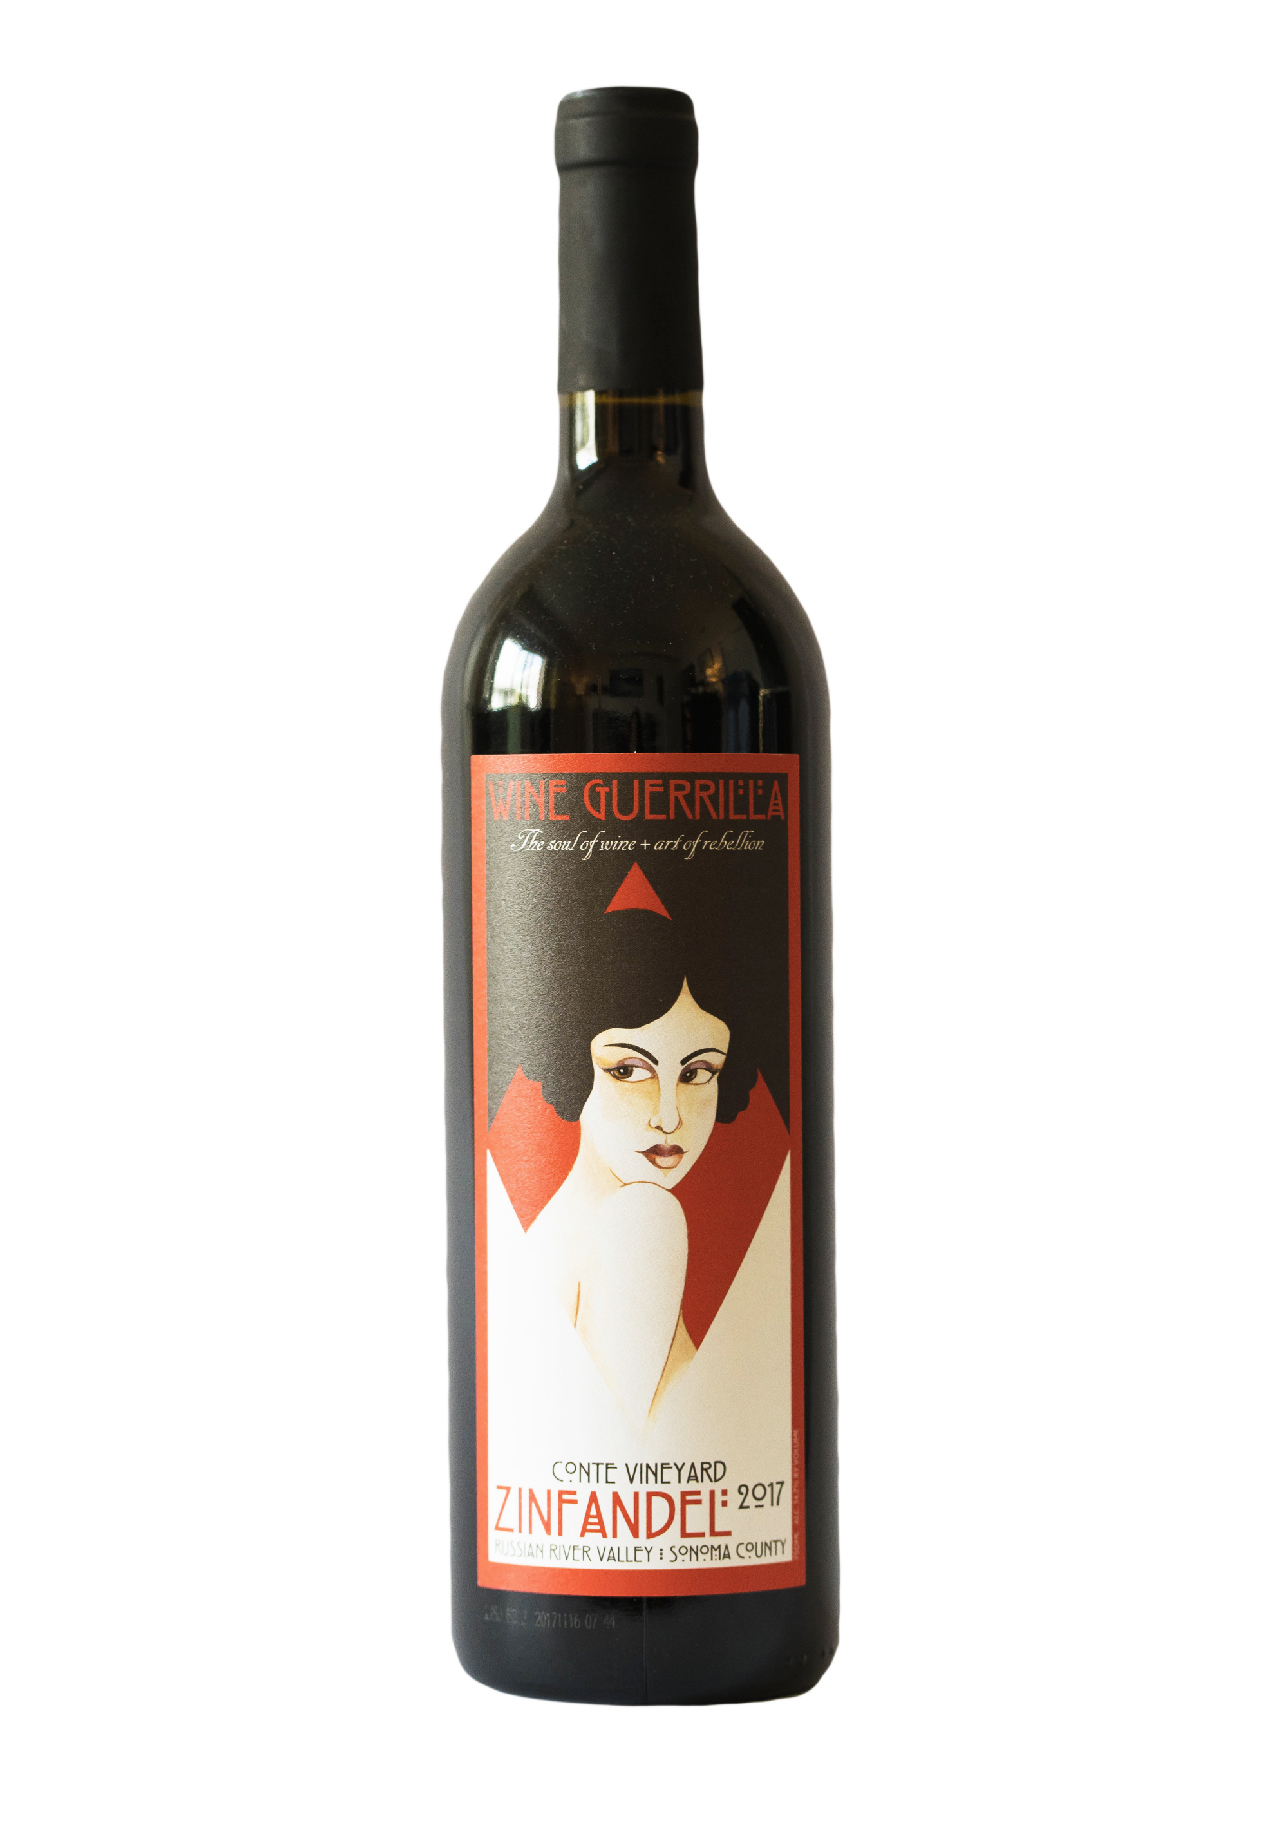 2017 Conte Vineyard Zinfandel